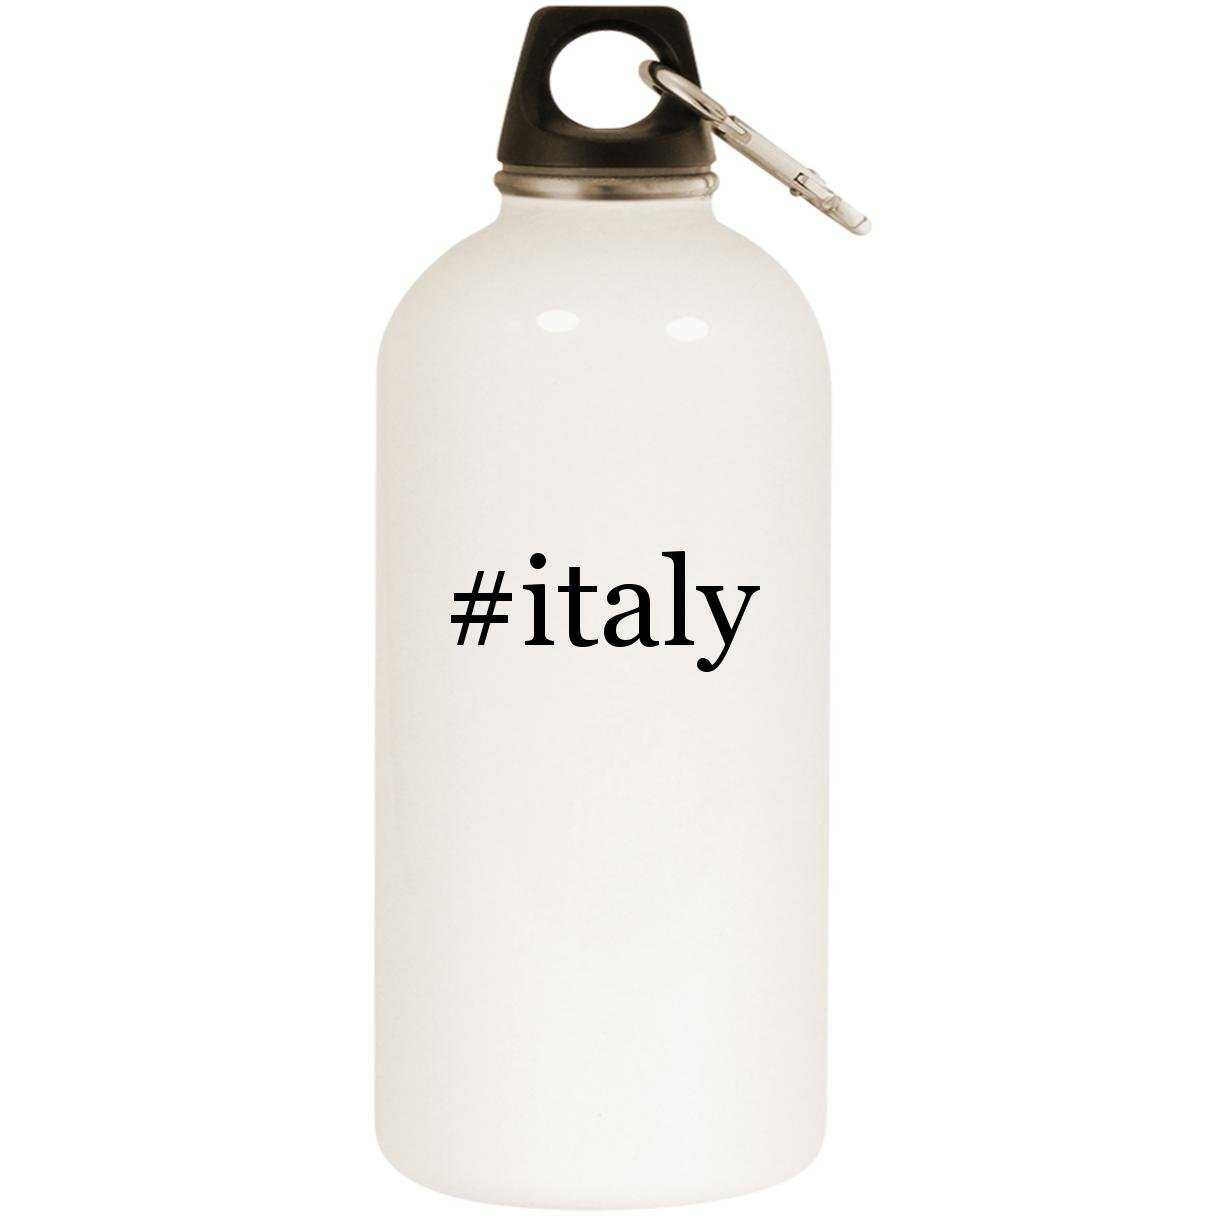 #italy - White Hashtag 20oz Stainless Steel Water Bottle with Carabiner